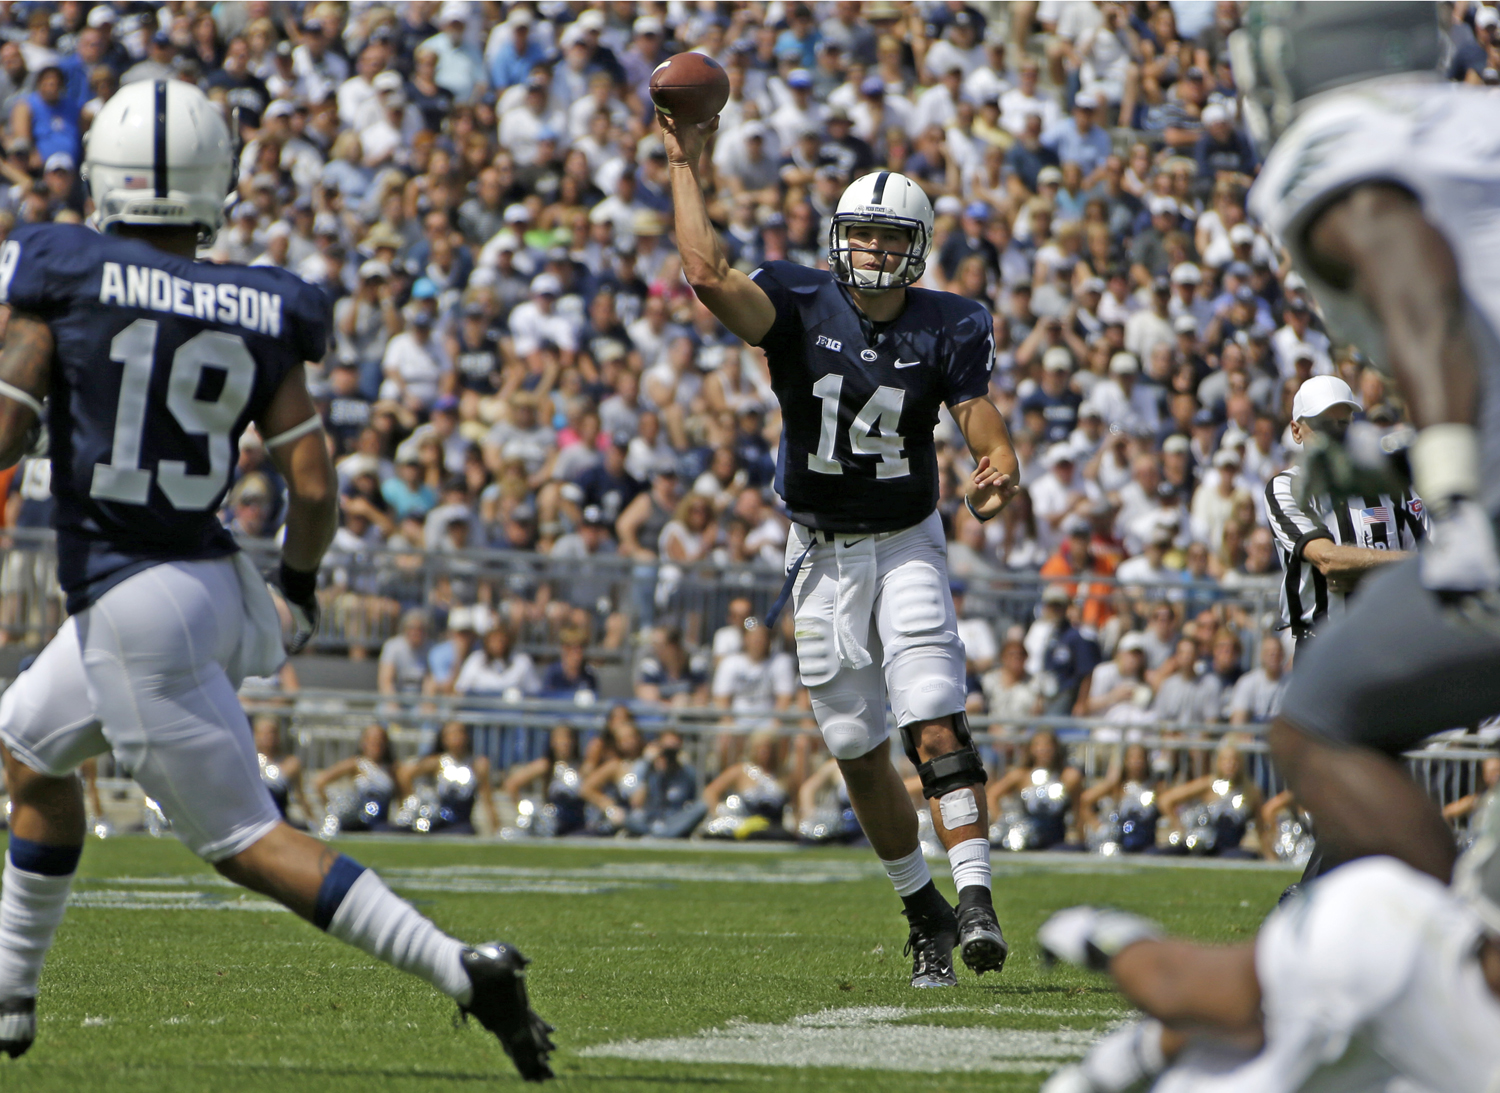 Penn State quarterback Christian Hackenberg (14) throws a pass to Penn State wide receiver Richy Anderson (19) during the second quarter of an NCAA college football game against Eastern Michigan in State College, Pa. Penn State won 45-7. (Gene J. Puskar/Associated Press)